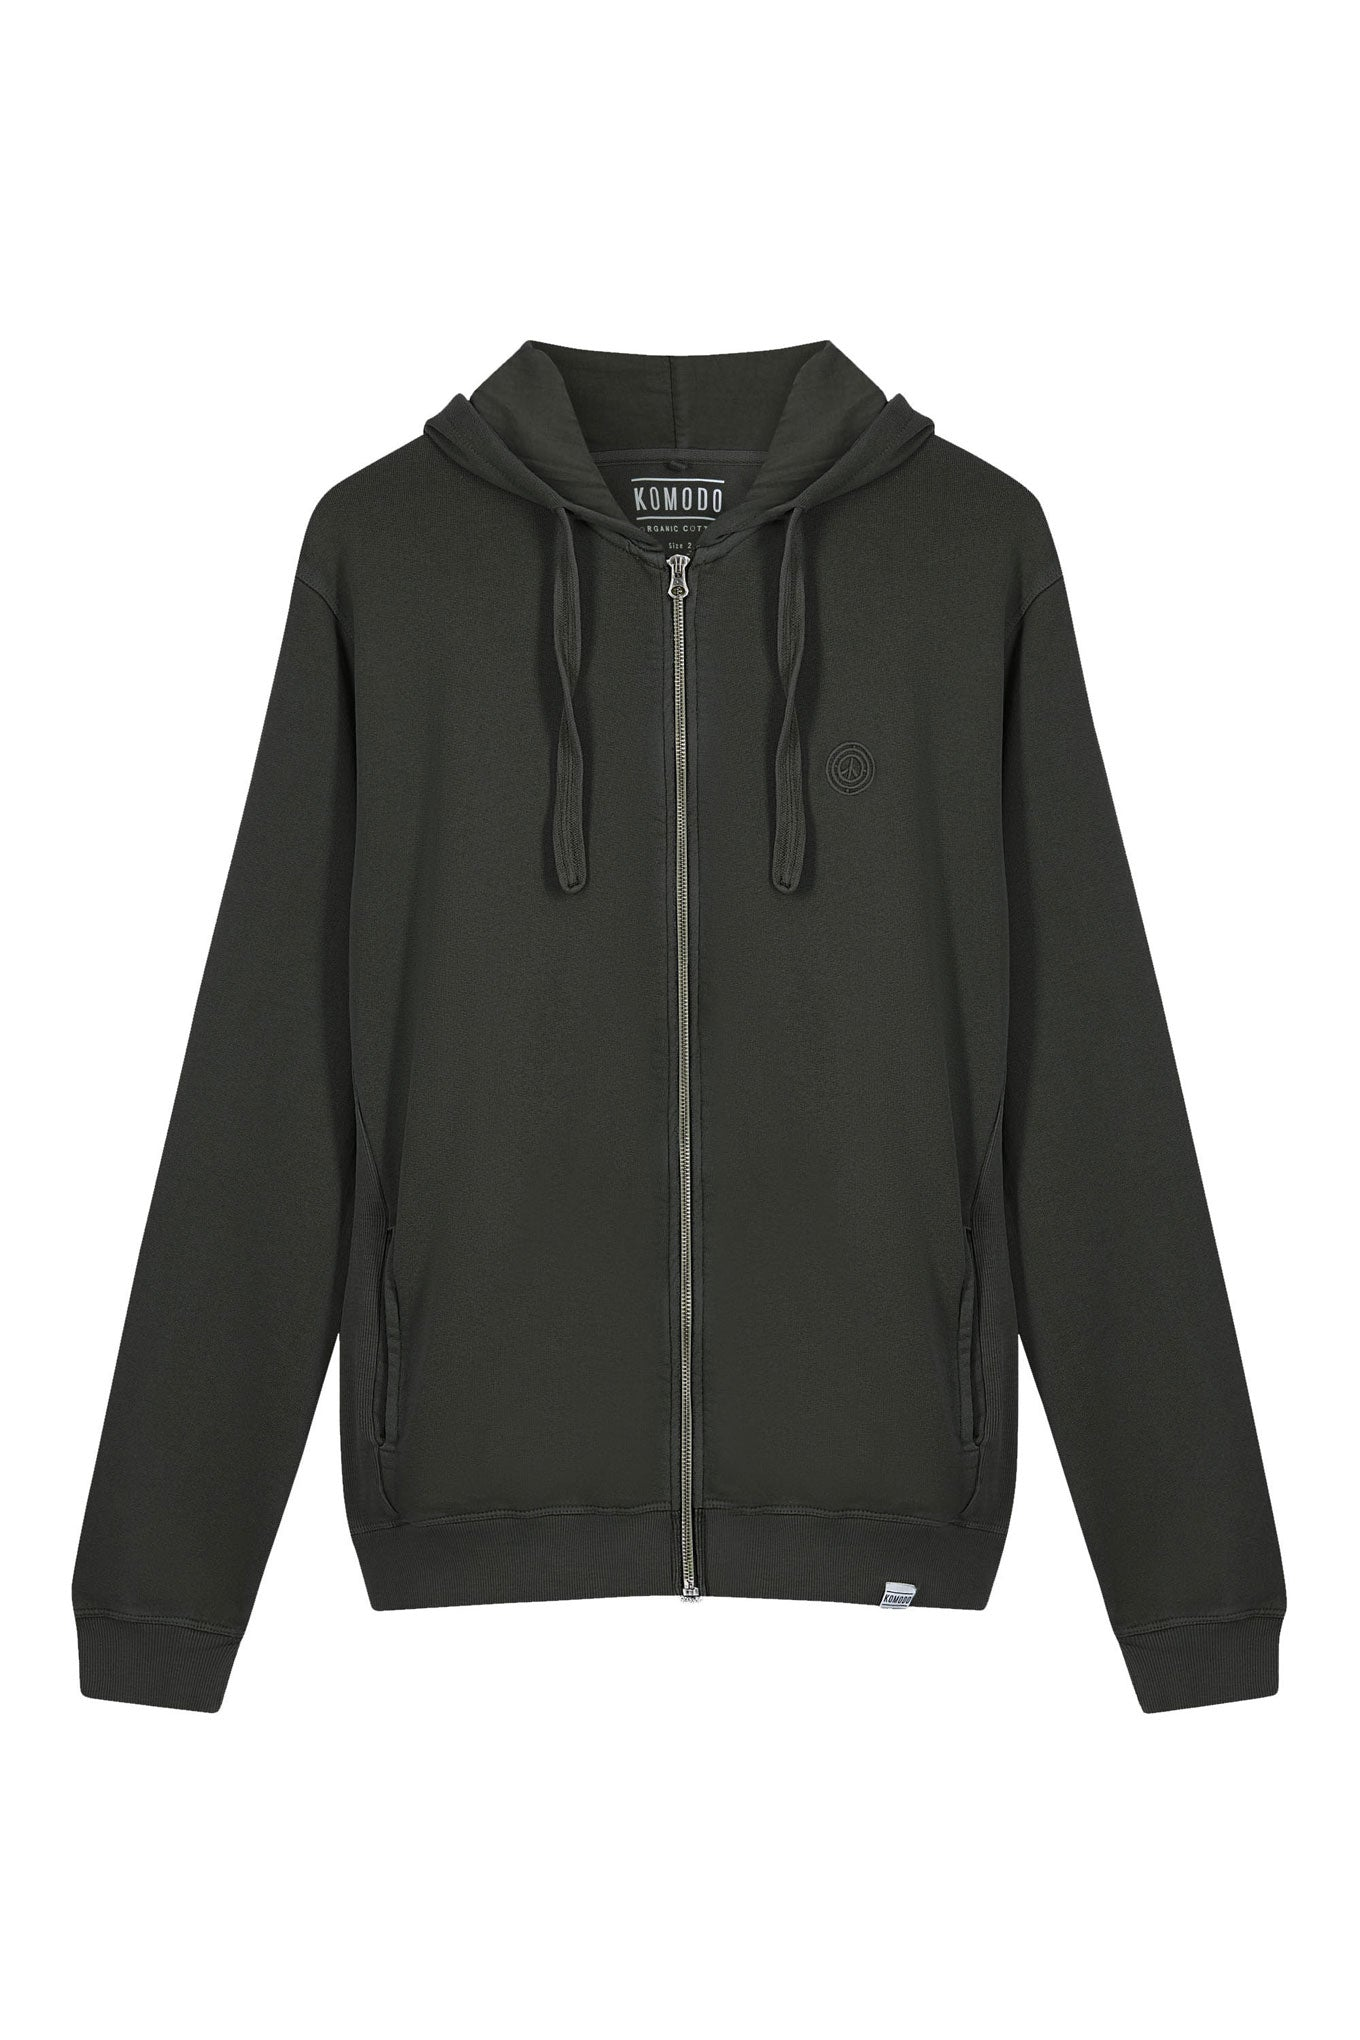 APOLLO Womens Organic Cotton Zip Hoodie Black